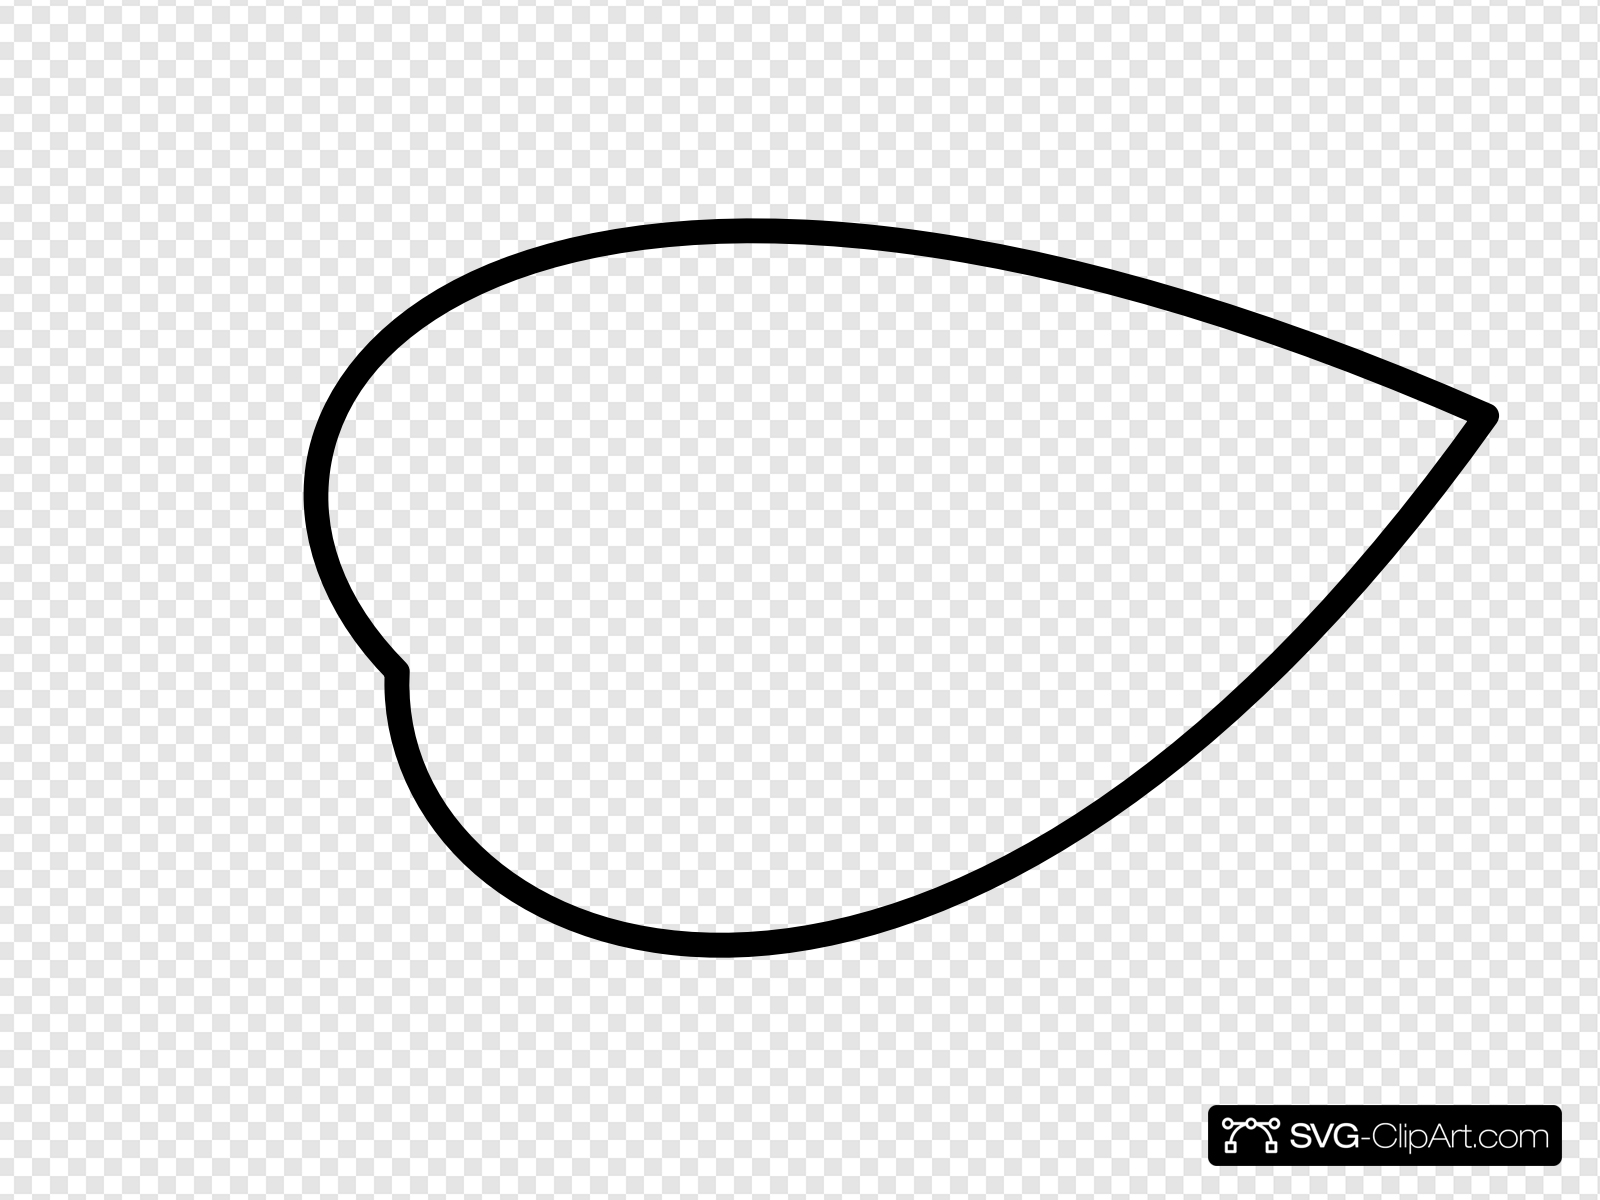 Leaf Outline Clip art, Icon and SVG.